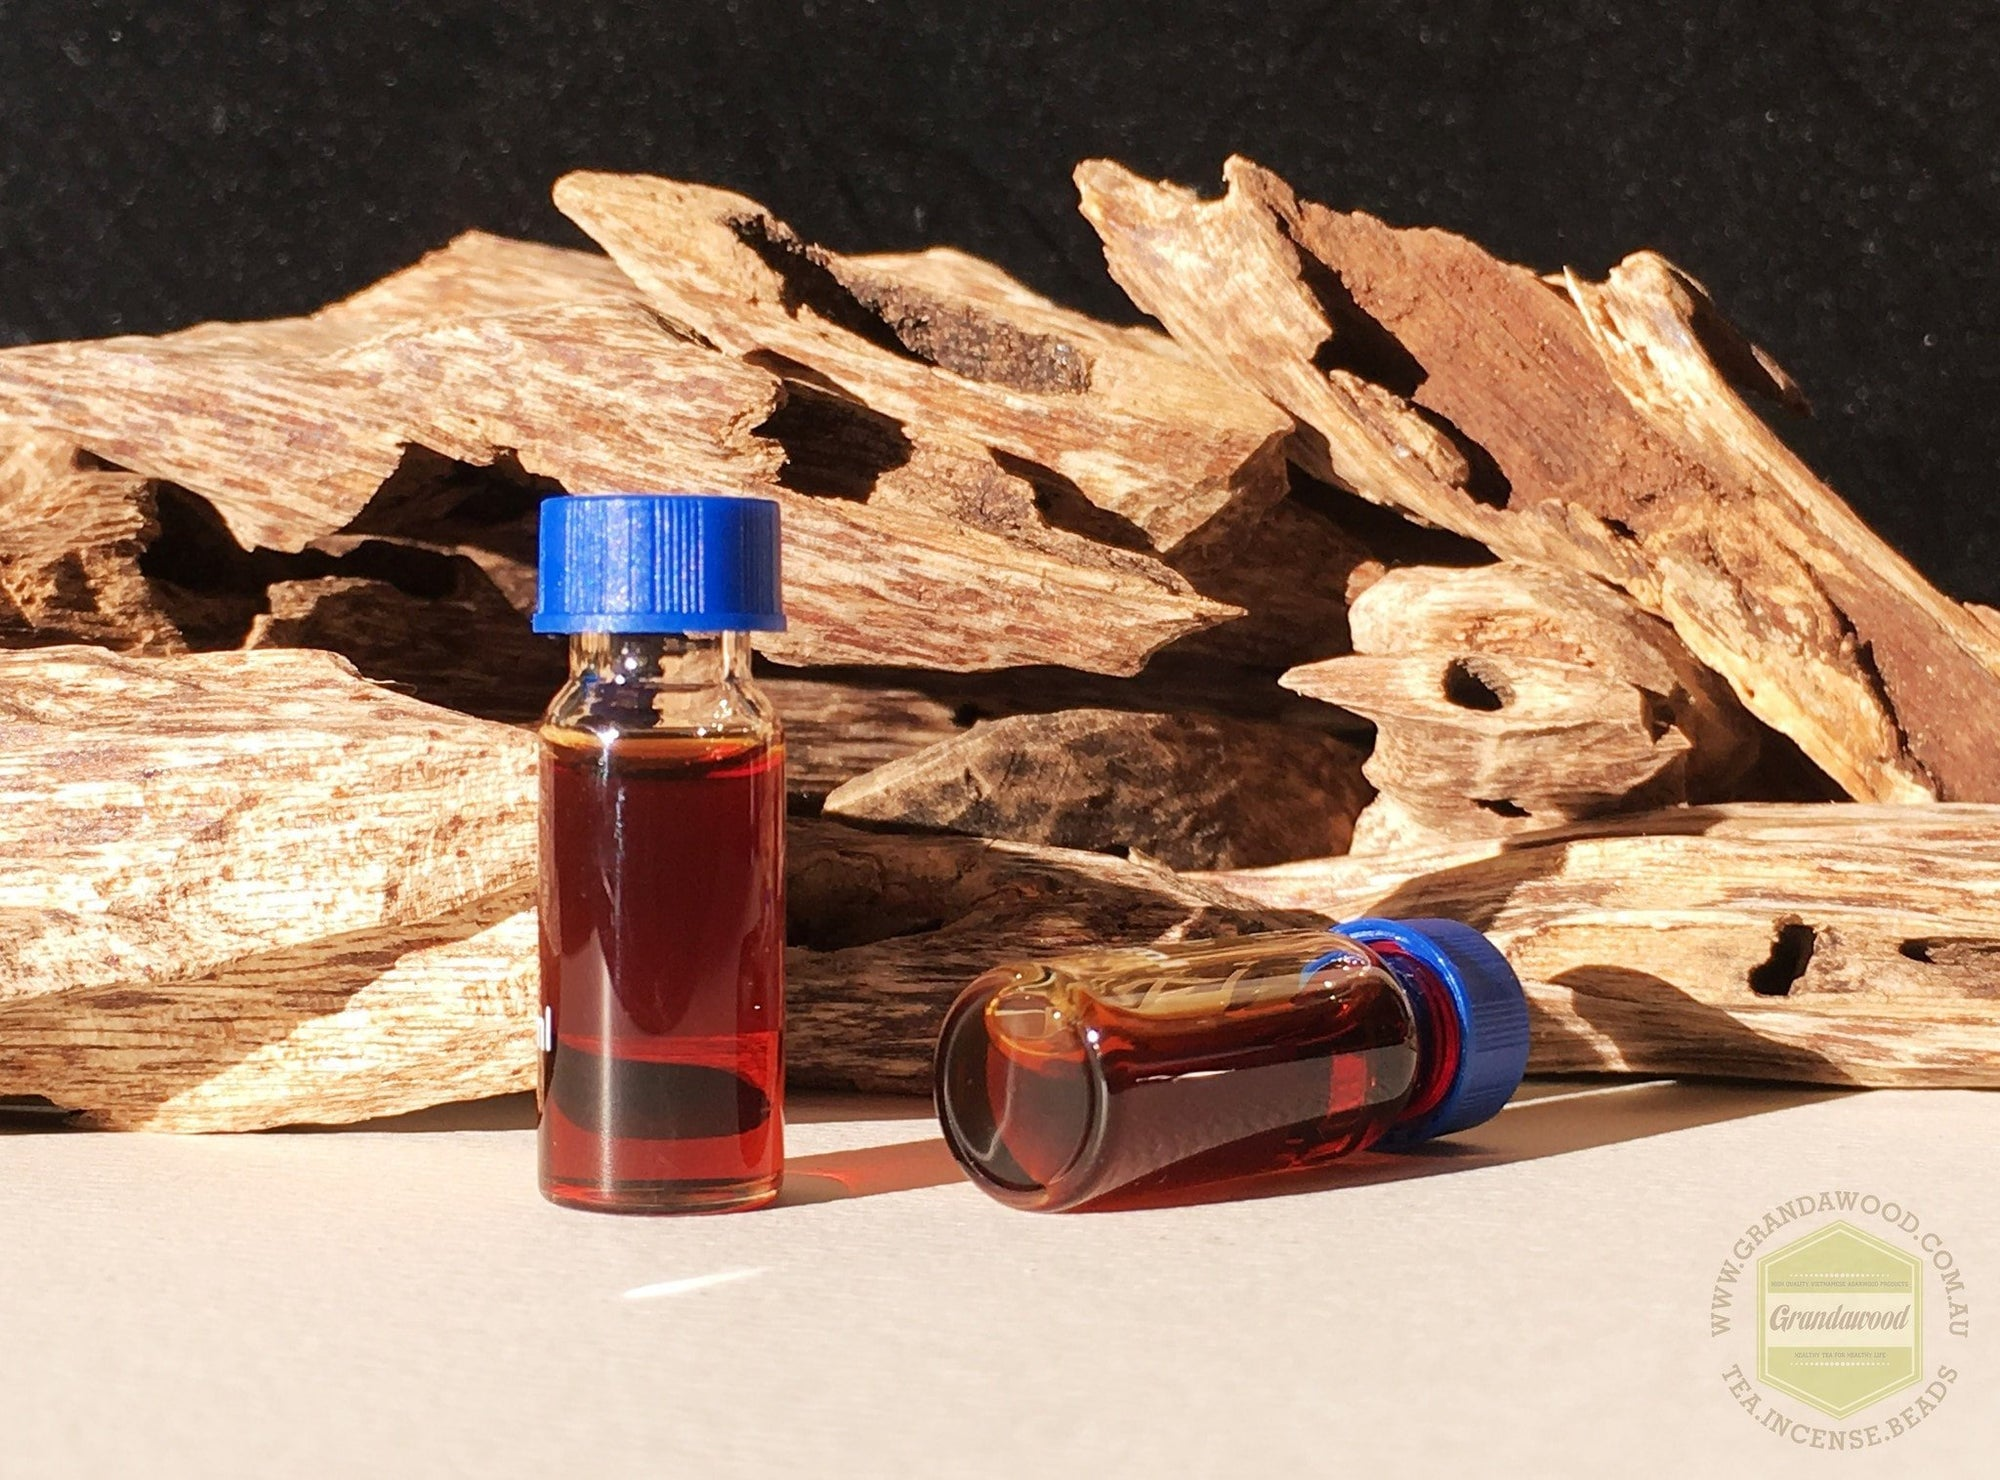 Oil zz-SOLD OUT-zz-OUT OF STOCK - Scent of Enlightenment- The Crimson Flower Nectar-Wild Agarwood- Steam Distillation